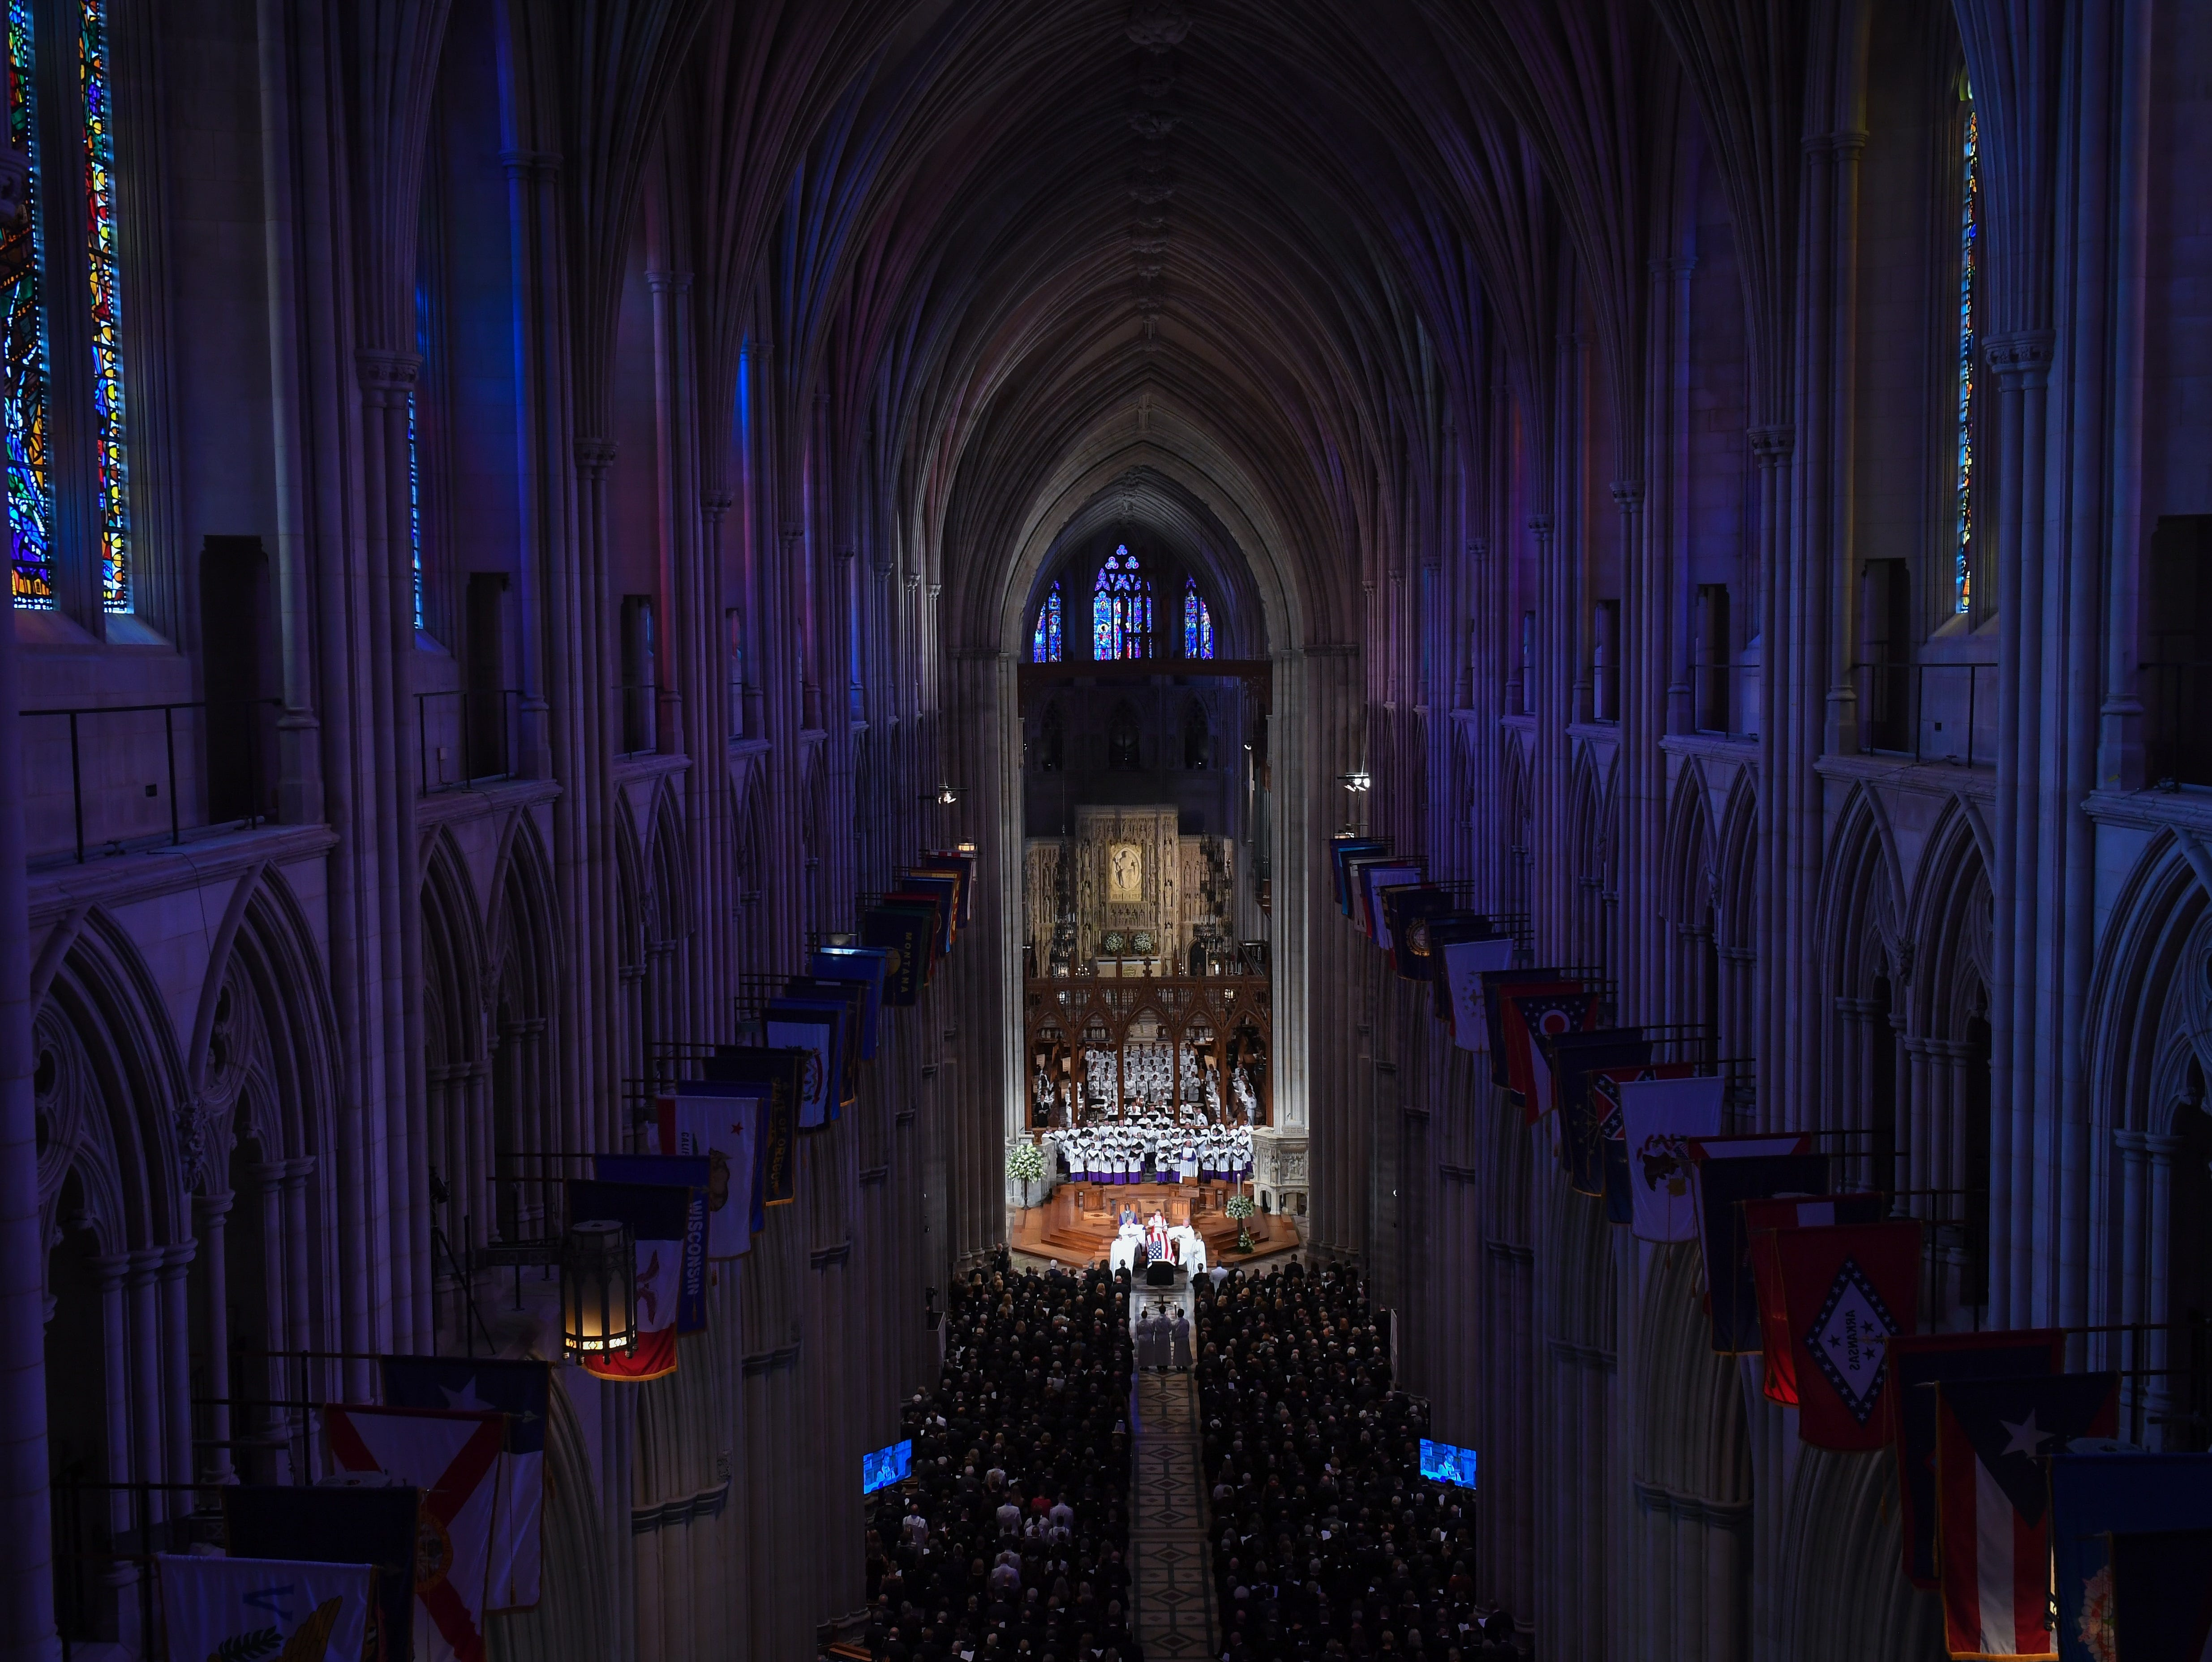 The memorial service for John McCain at the National Cathedral in Washington, DC, on Sept. 1, 2018.